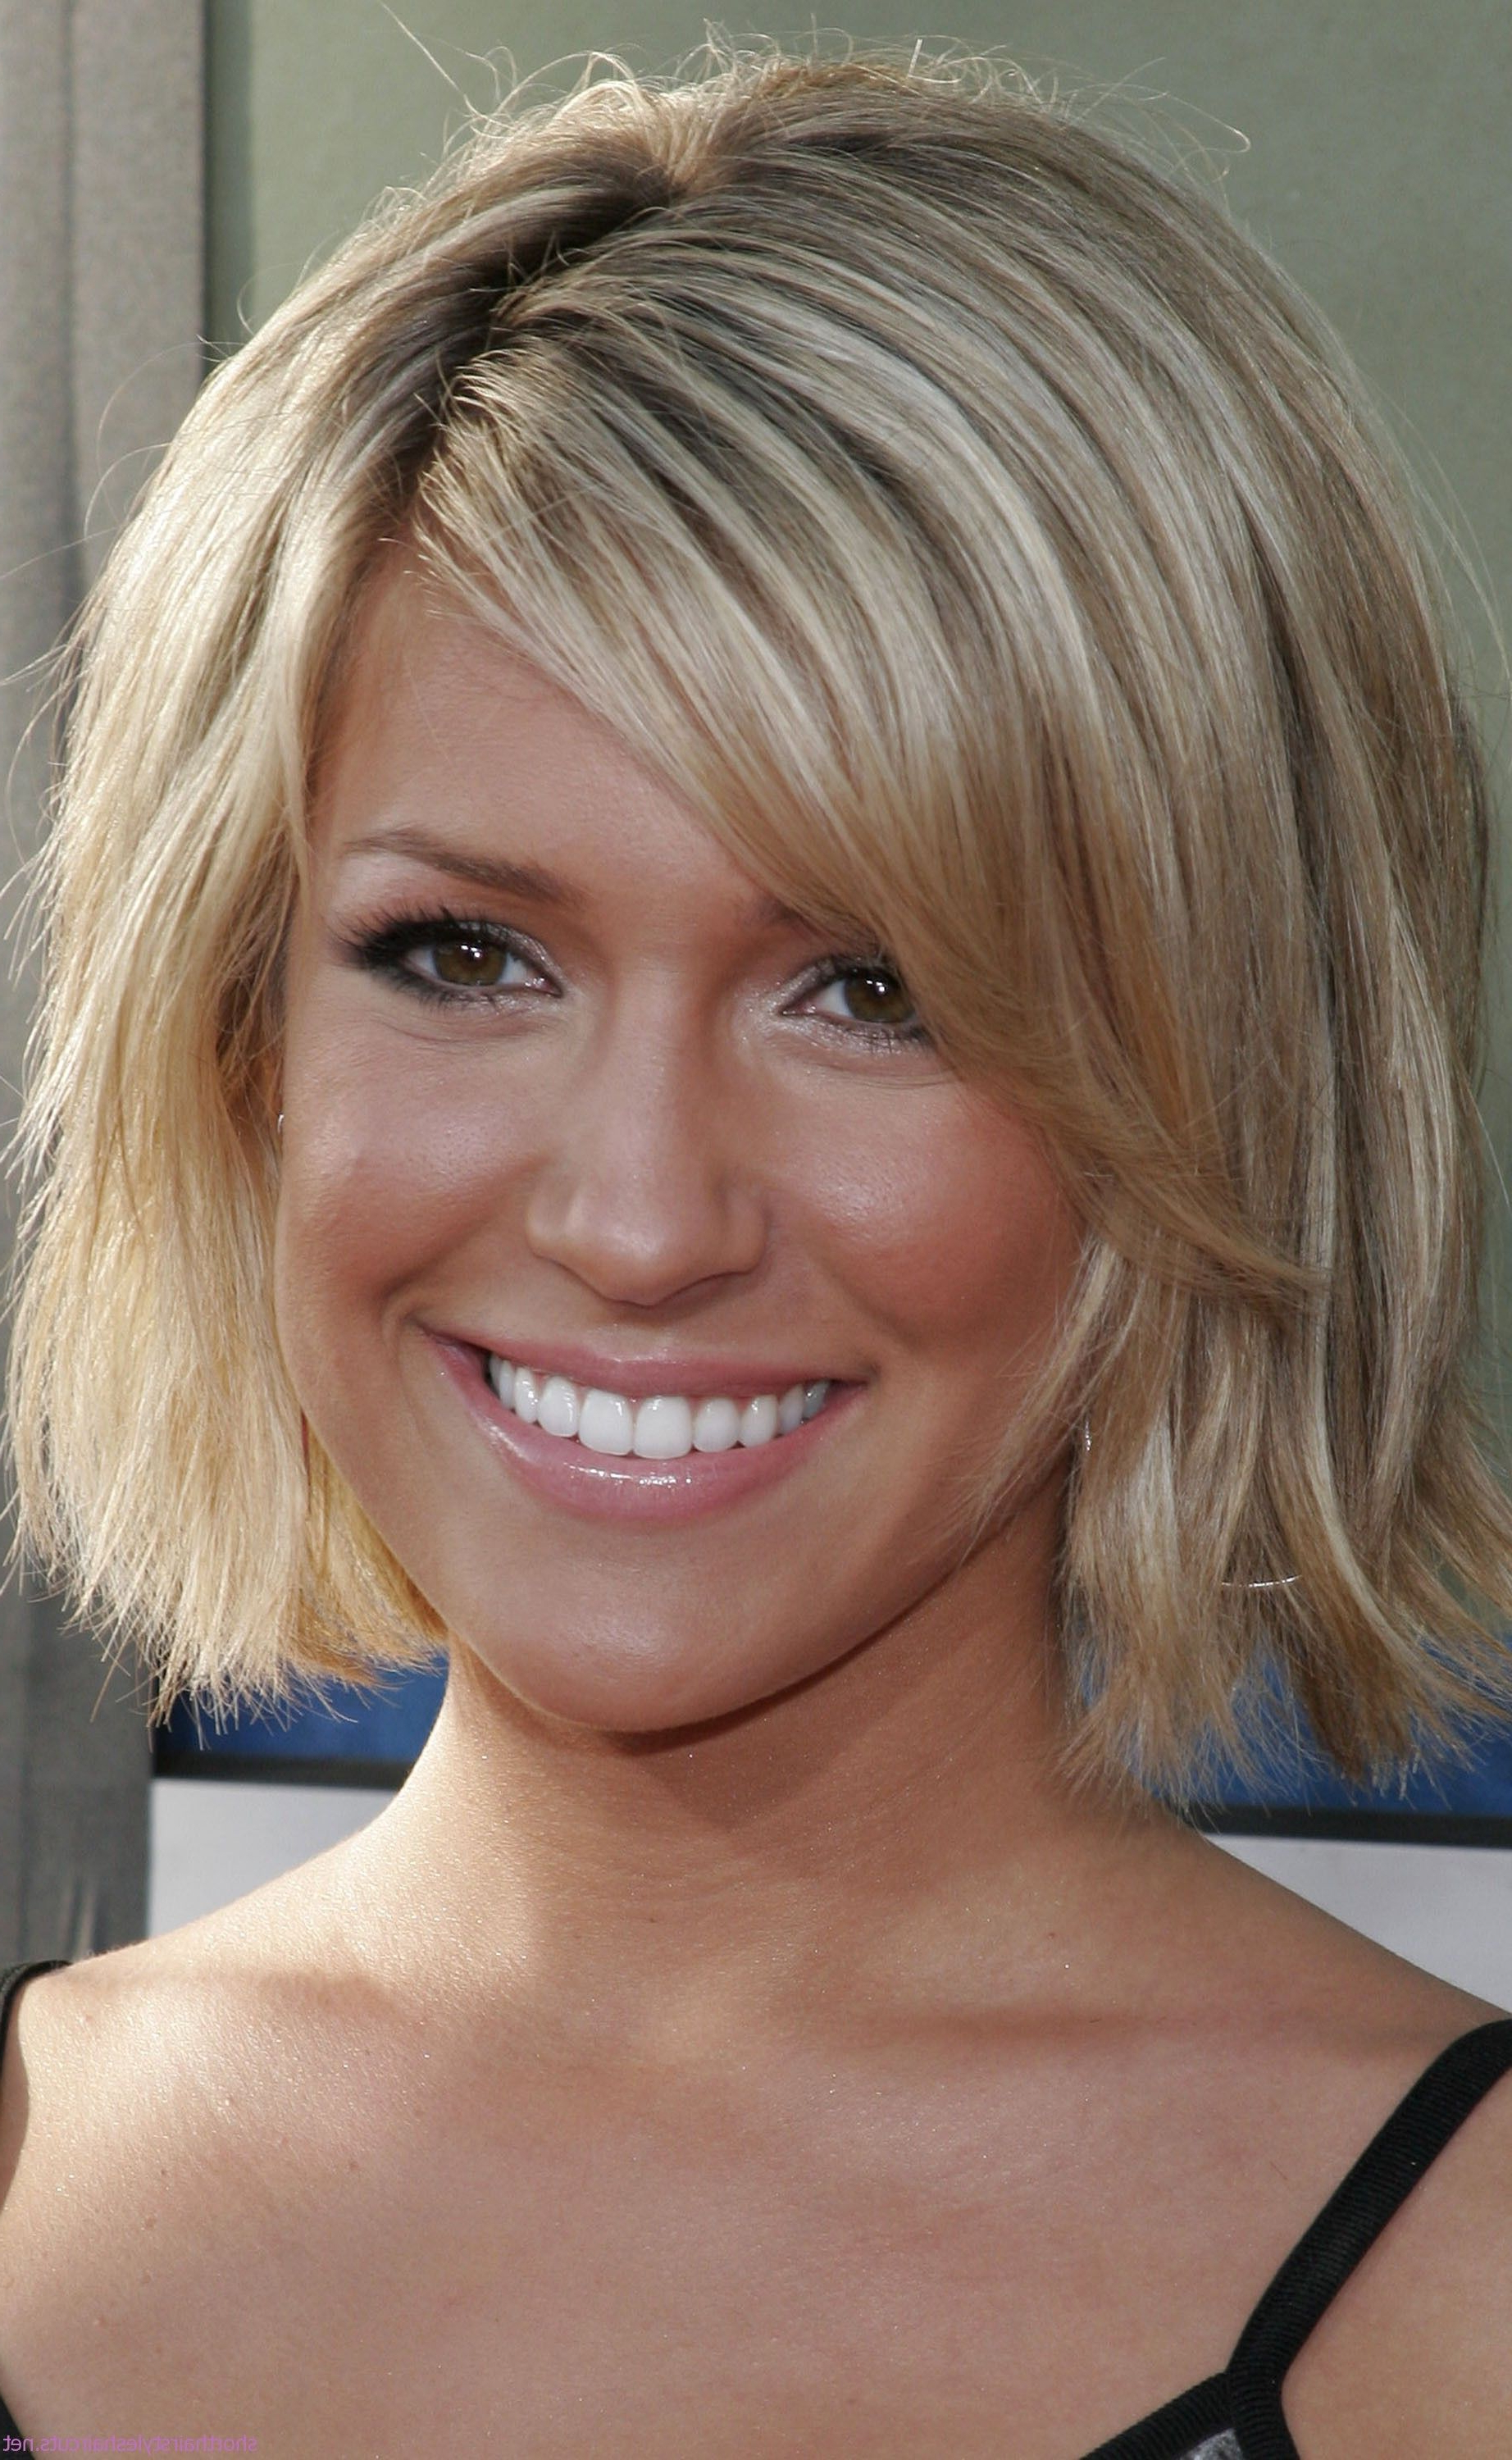 Widely Used Kristin Cavallari Medium Haircuts Within Kristin Cavallari Medium Hairstyles For Thin Hair (View 2 of 20)